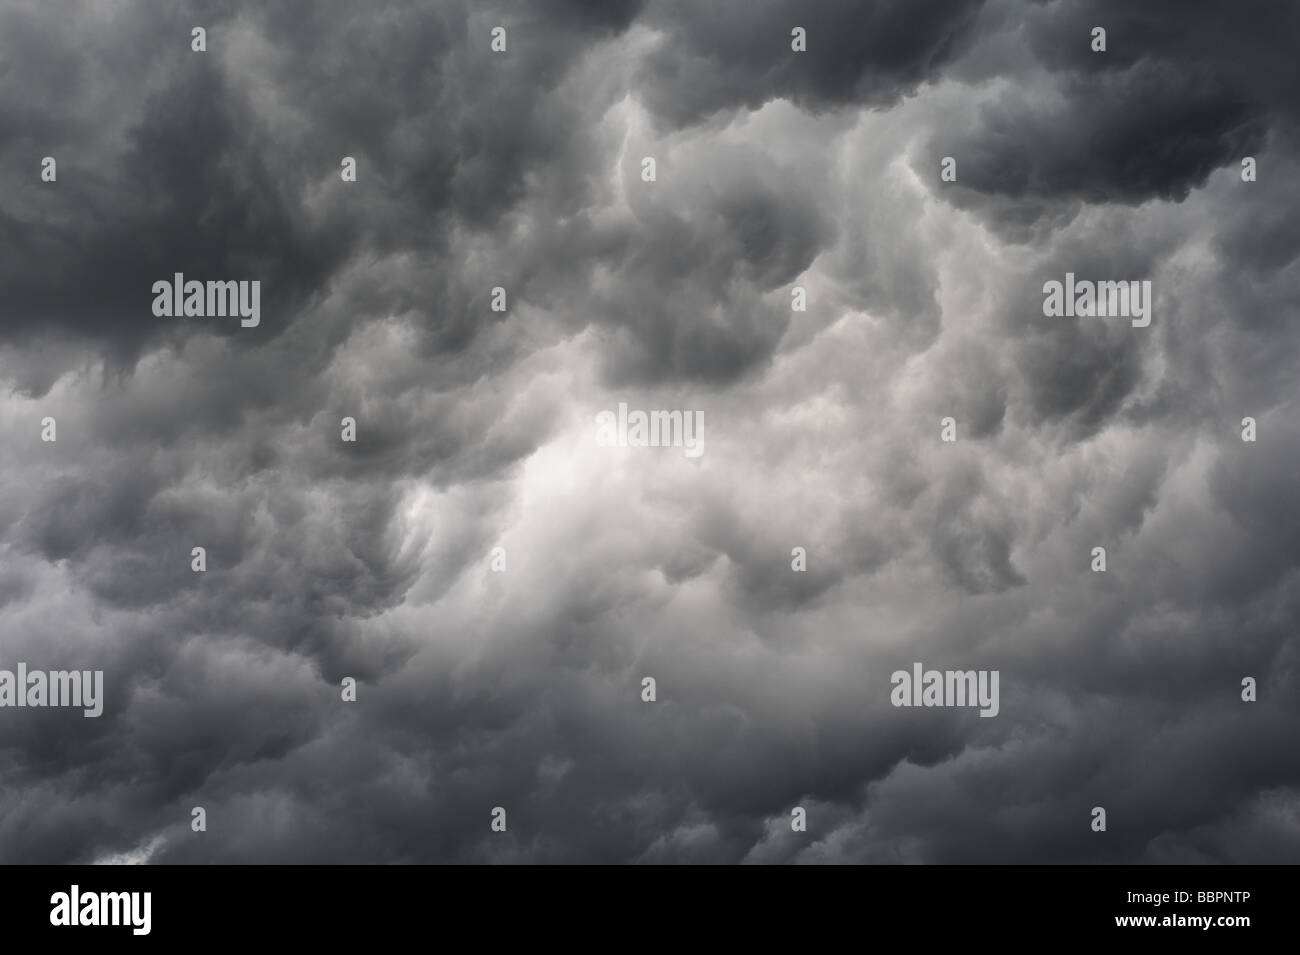 swirling-storm-clouds-mammatus-type-clouds-BBPNTP.jpg